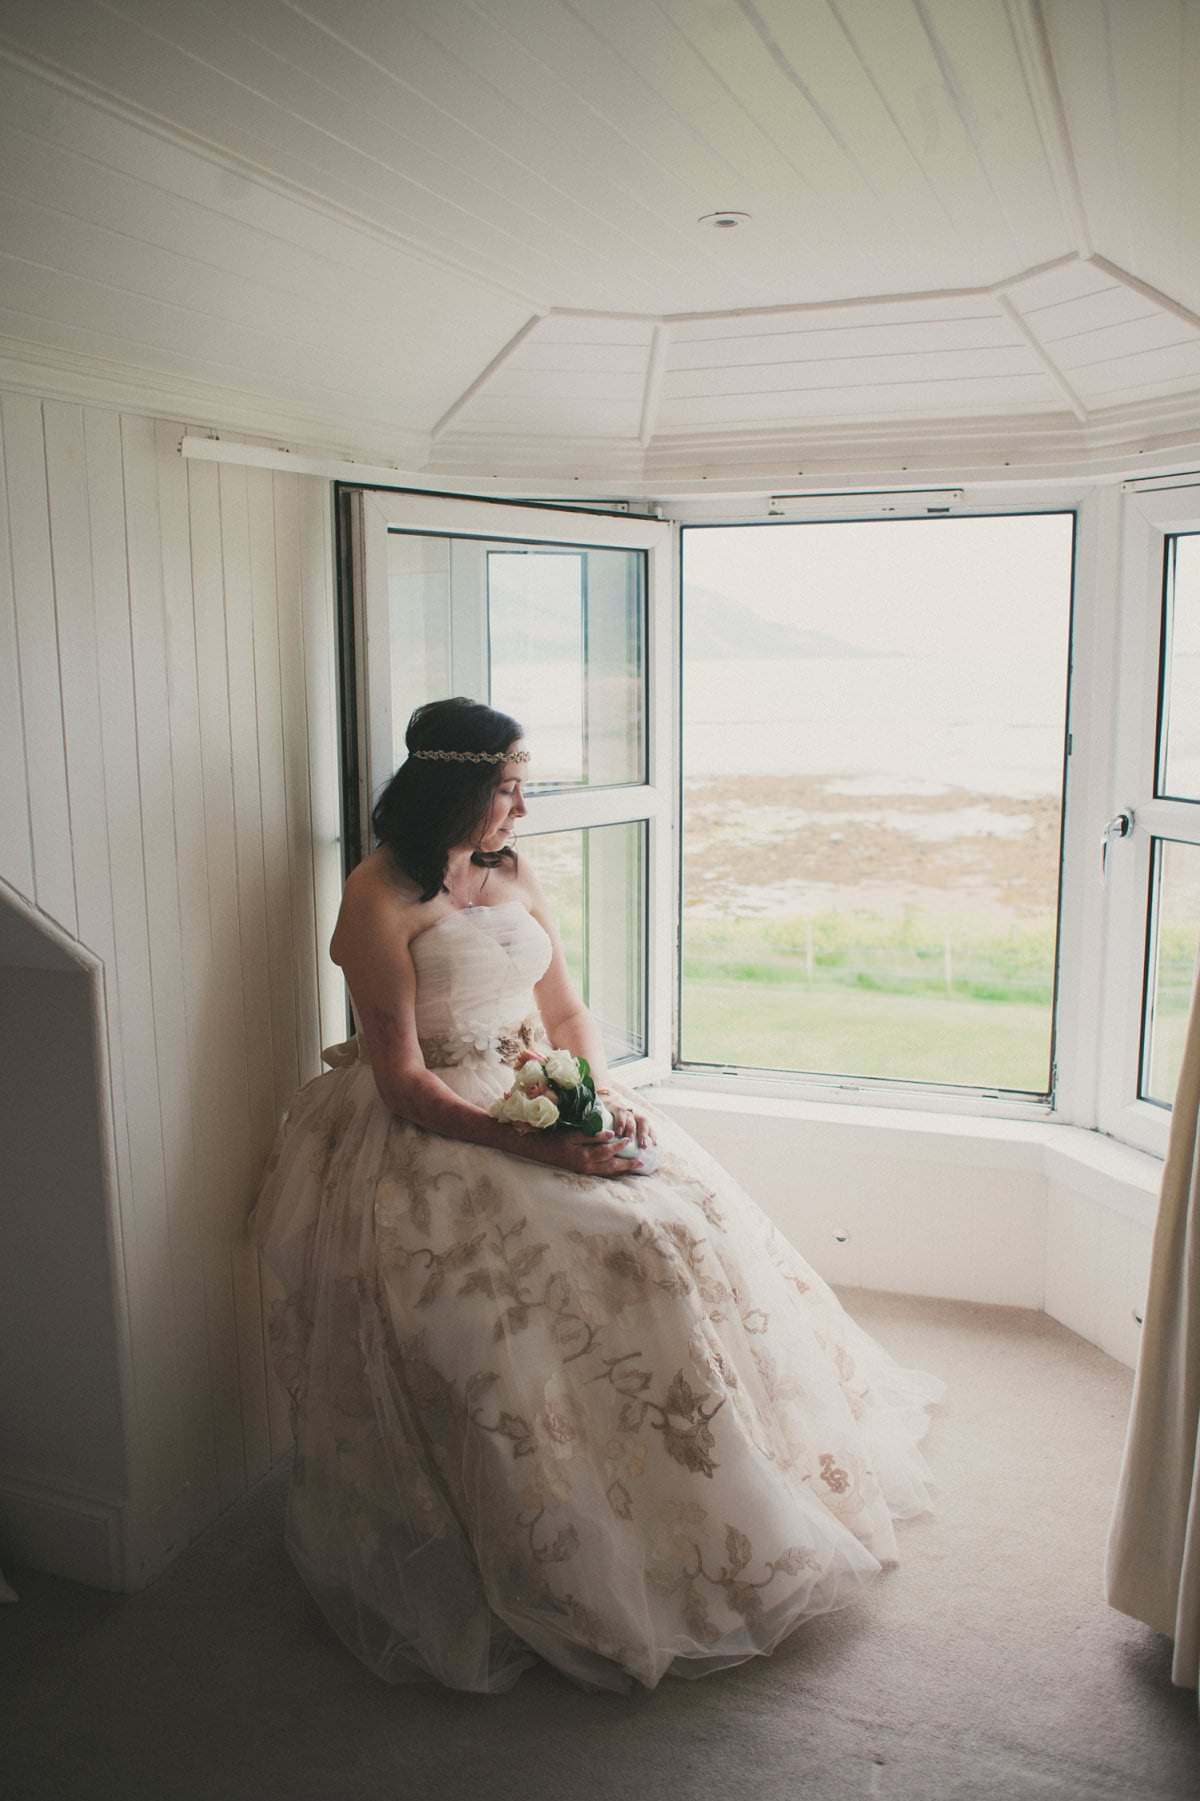 Bride sits by window at wedding elopement at Glenisle Hotel on The Isle of Arran Scotland